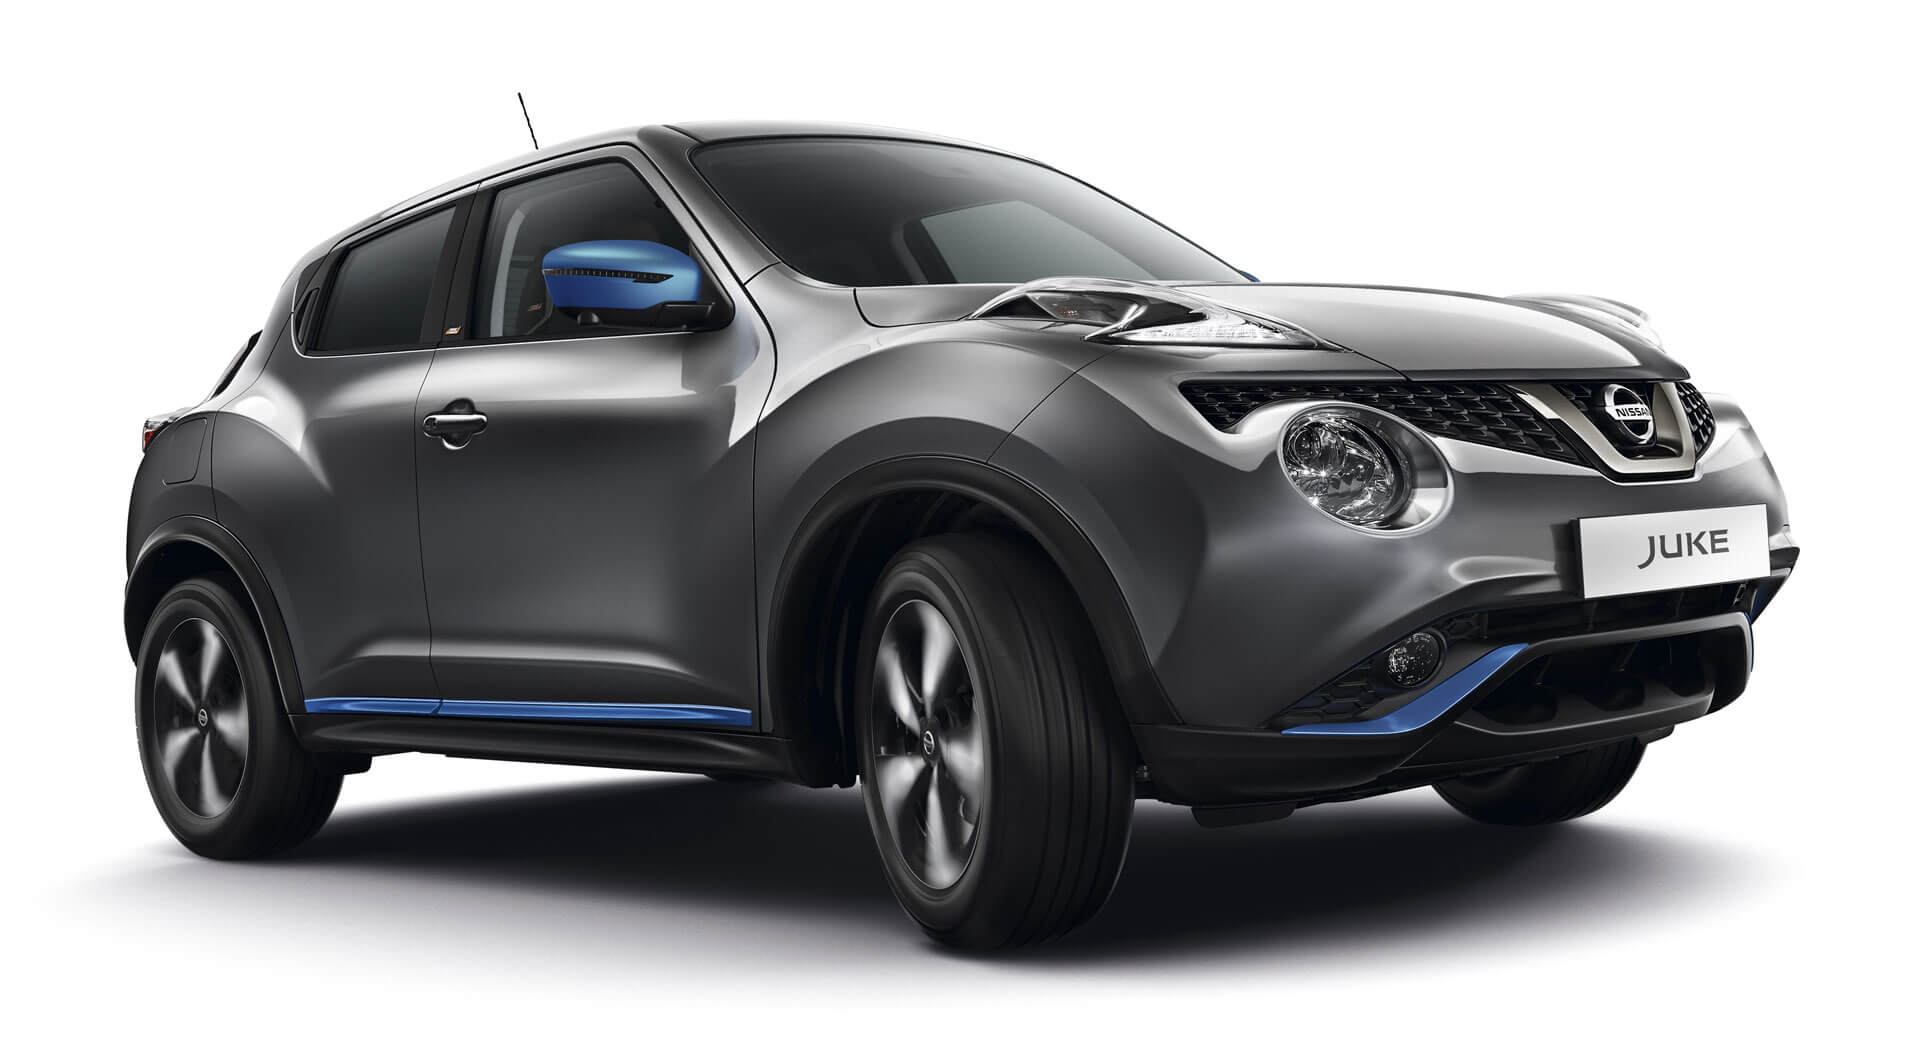 2019 nissan juke with minor facelift priced from 15 505. Black Bedroom Furniture Sets. Home Design Ideas